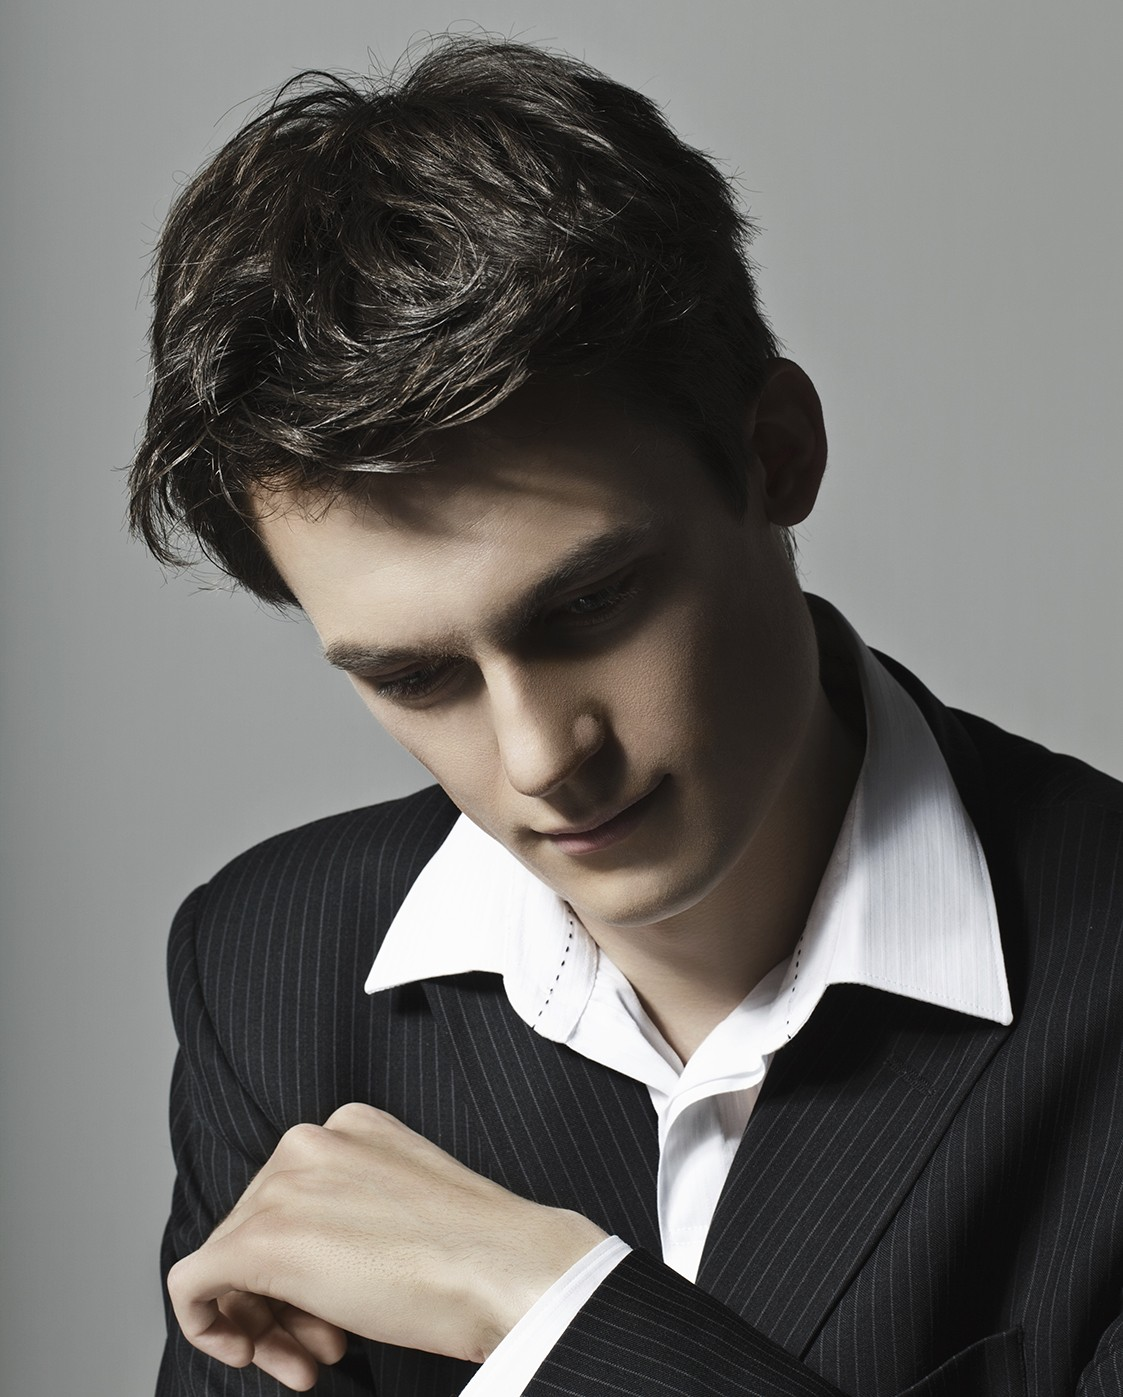 Pensive young man in suit